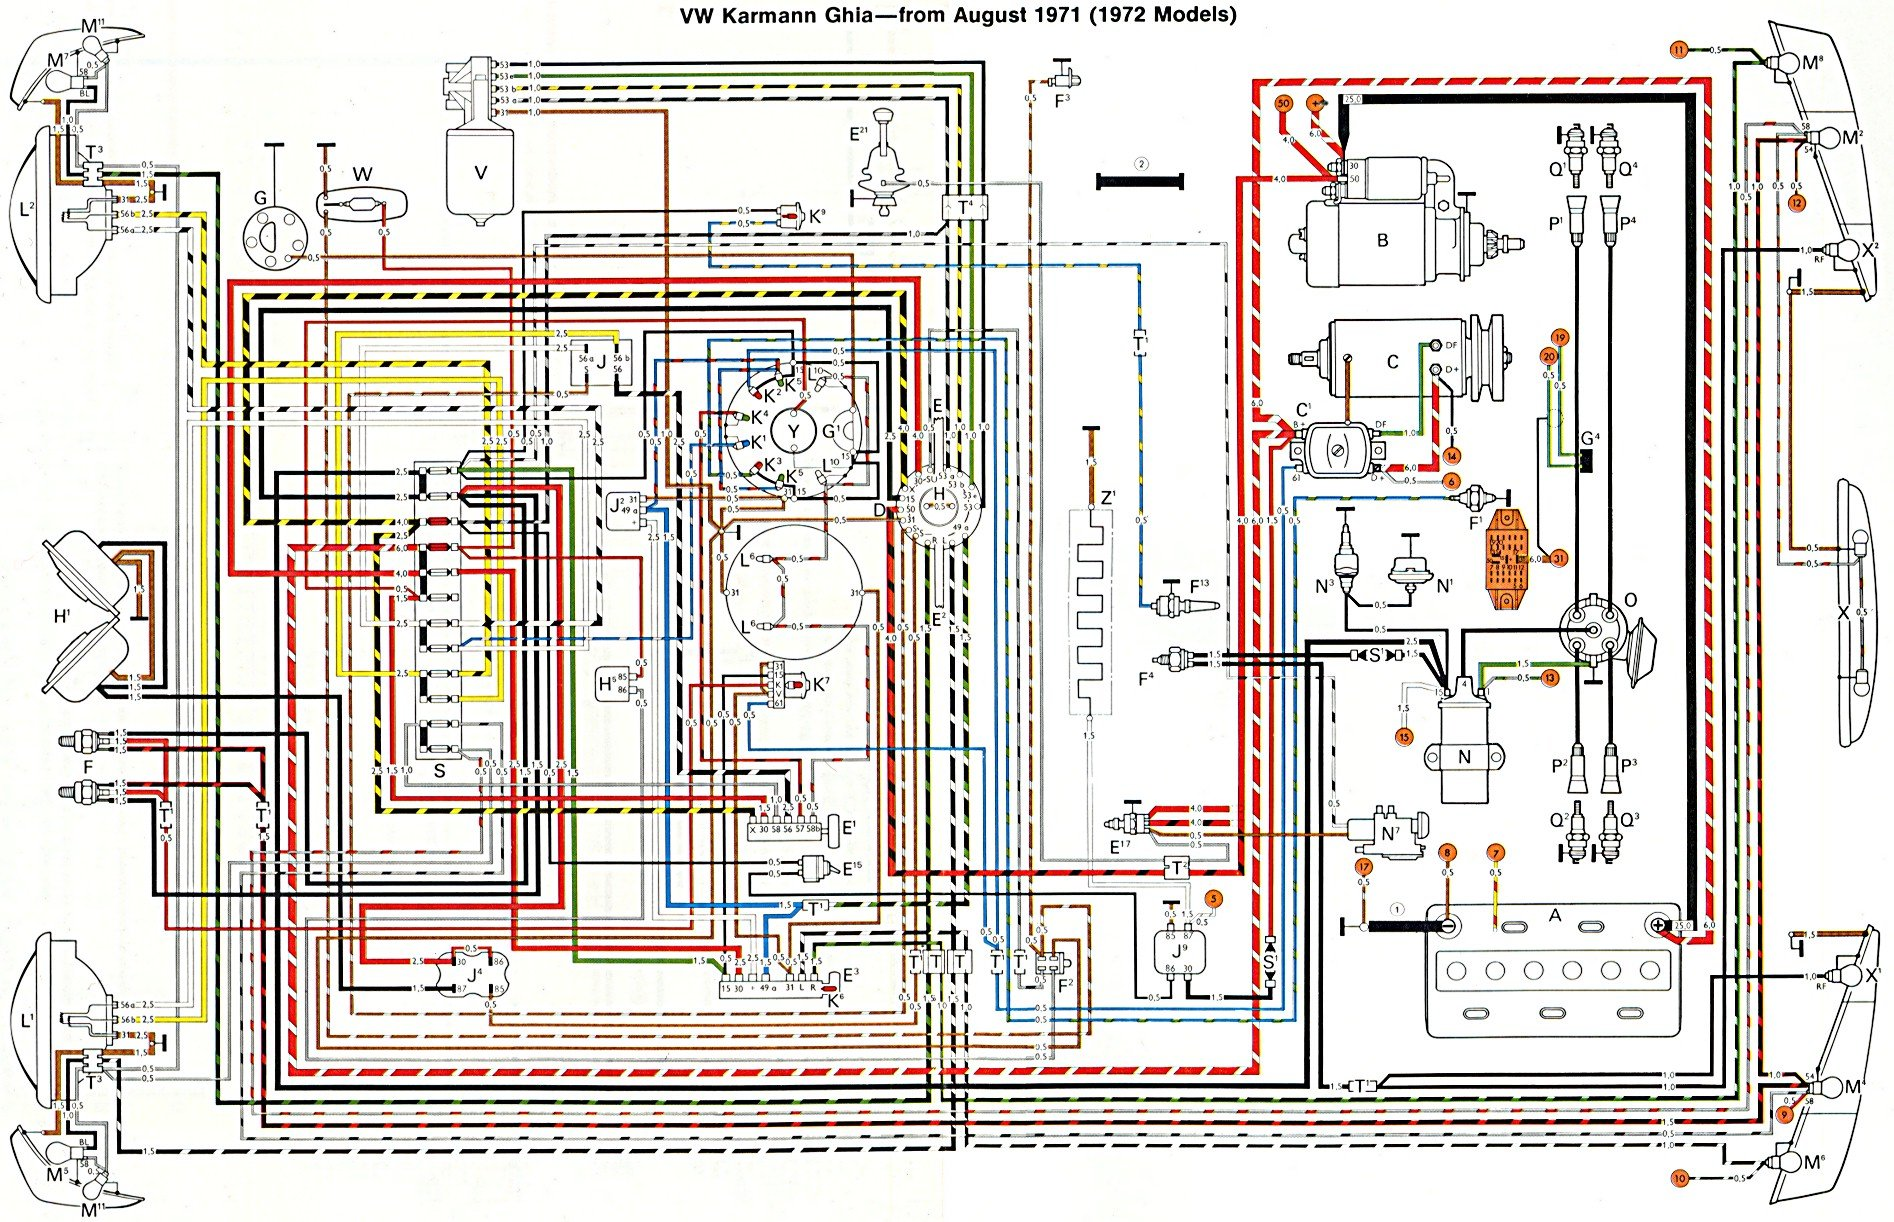 72ghia 1971 karmann ghia wiring diagram karmann ghia wiring harness Wiring Harness Diagram at honlapkeszites.co